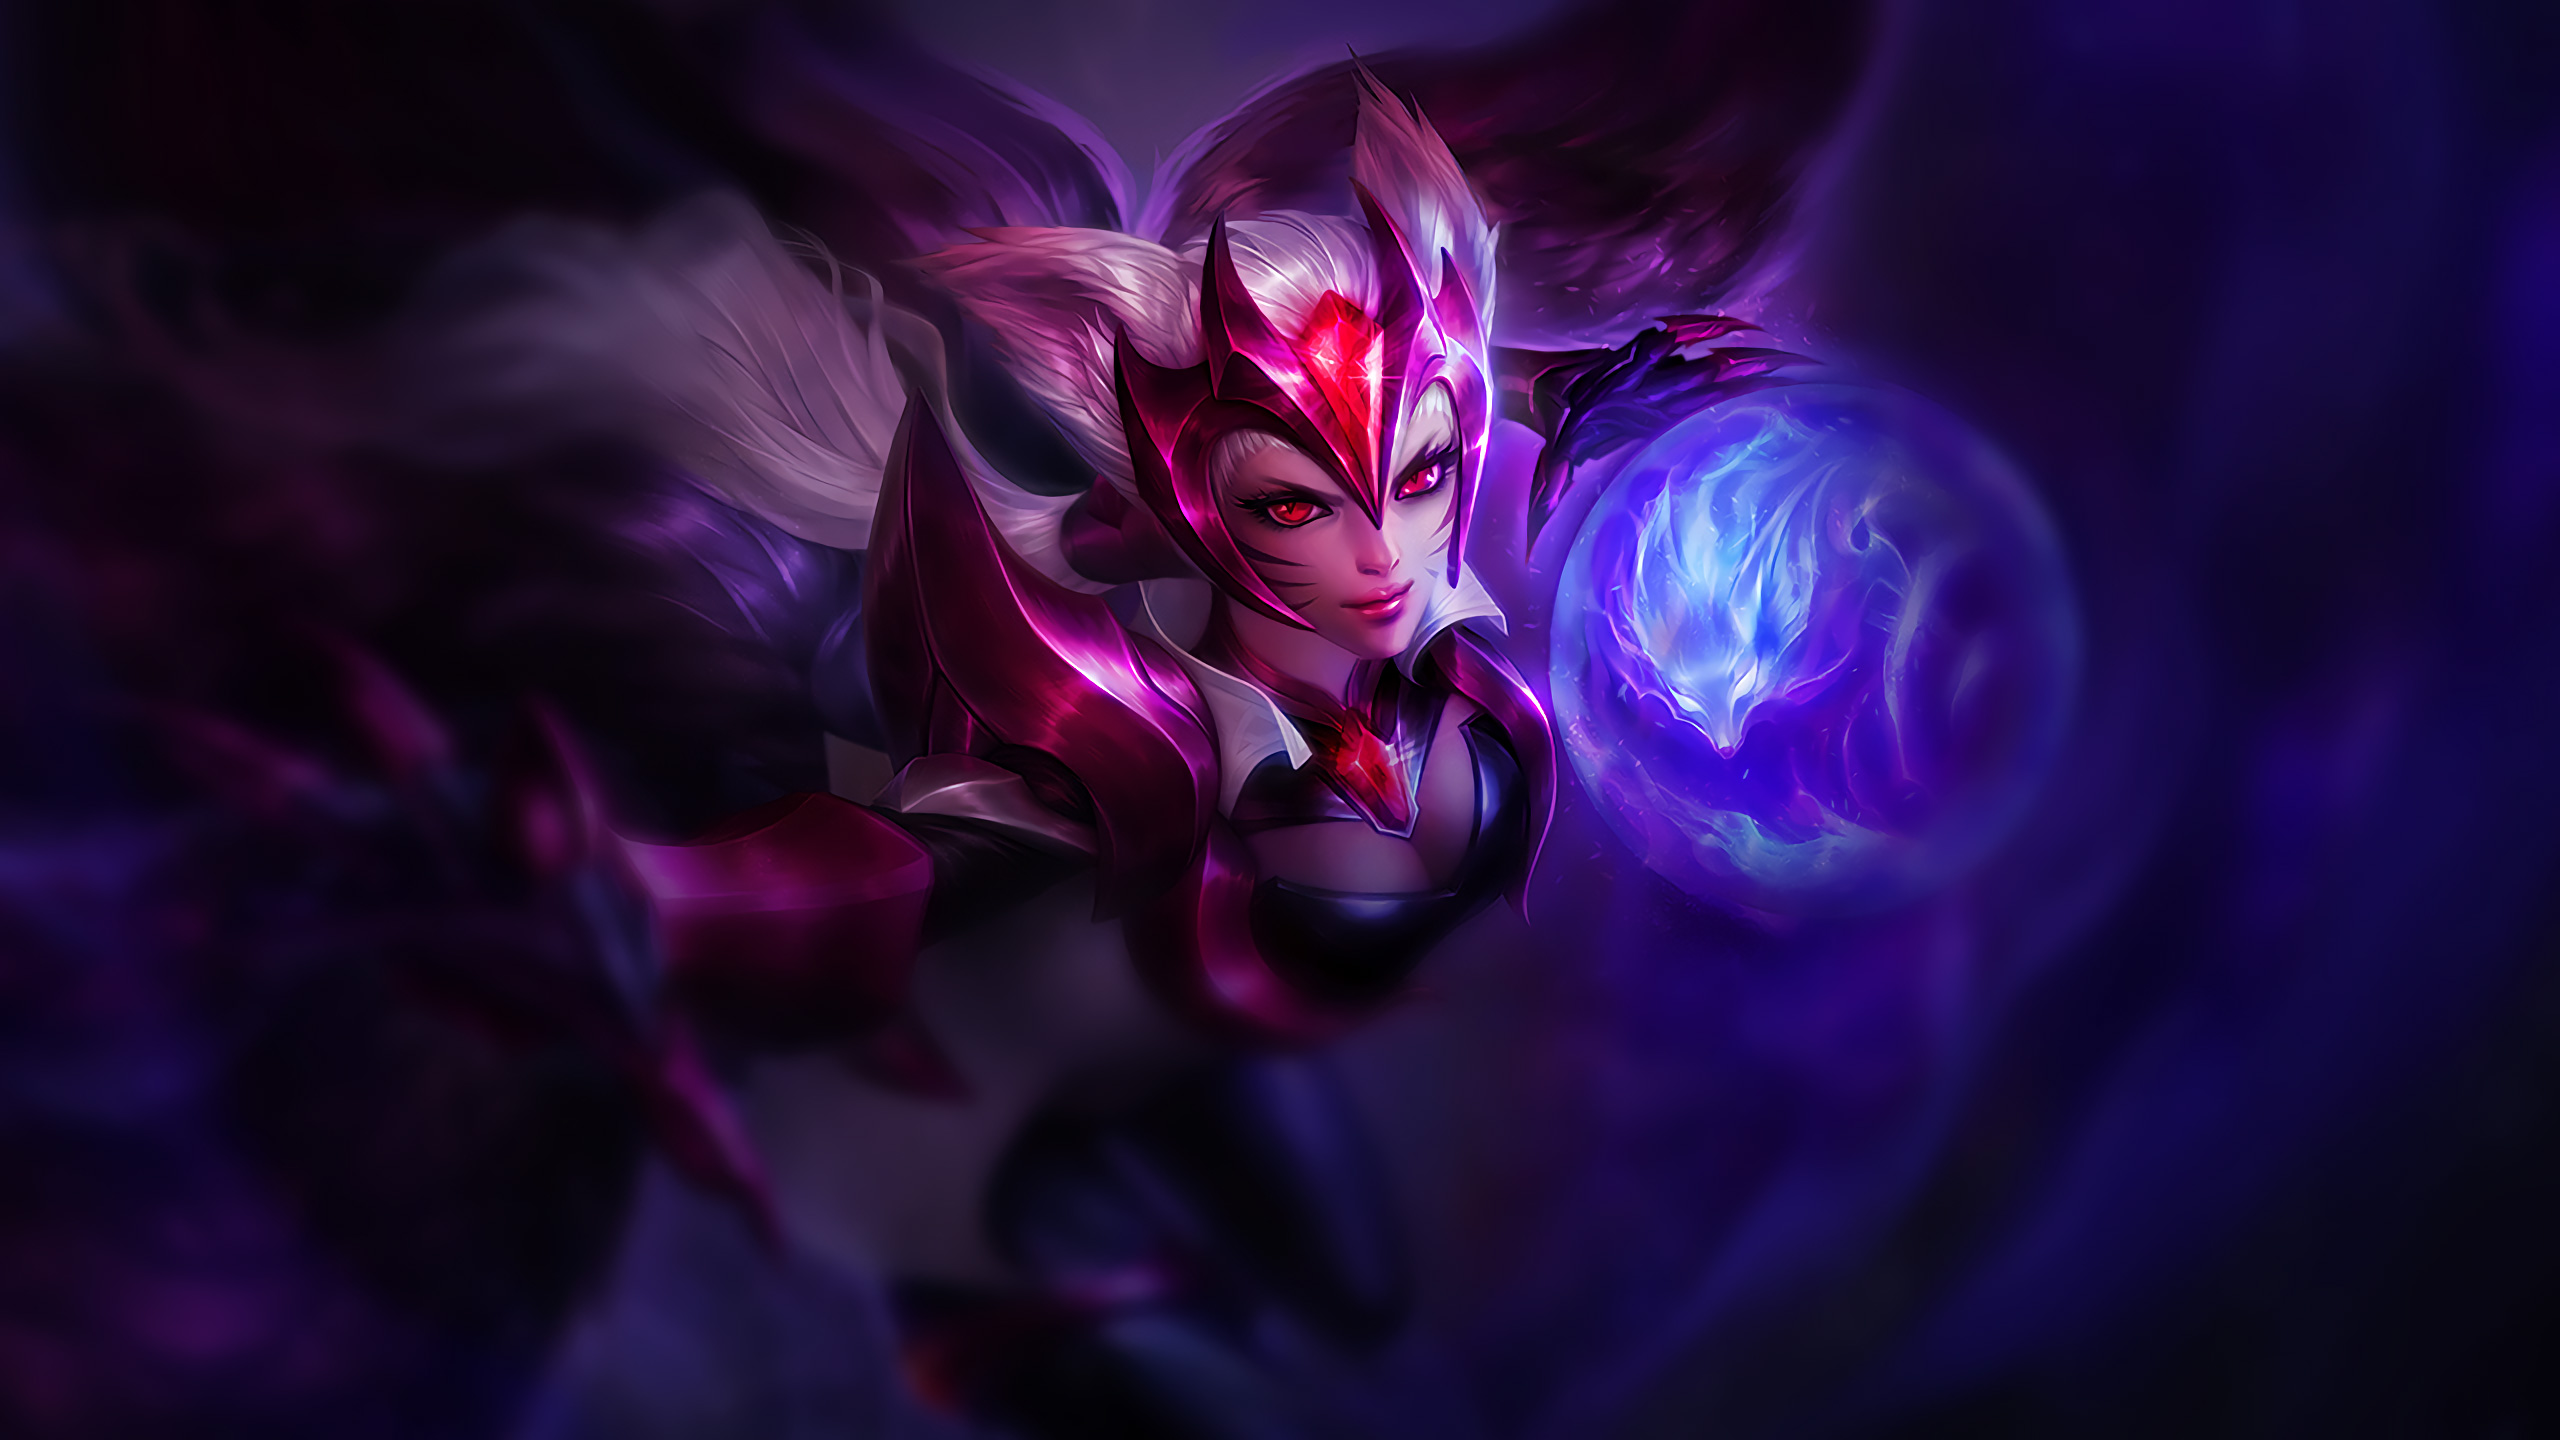 Where Can I Find All Those Champion Centered Wallpaper